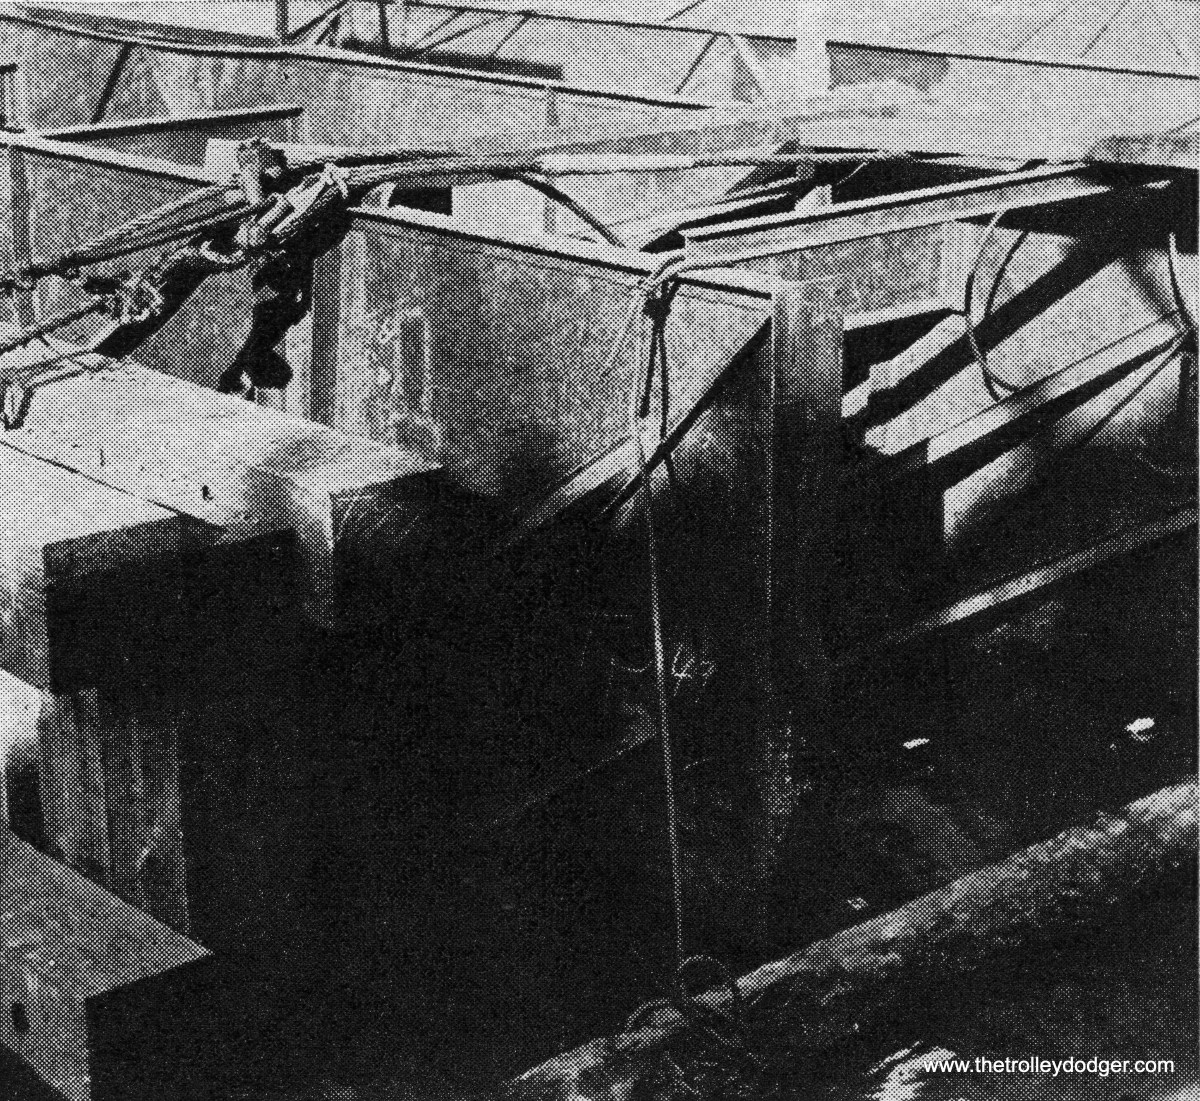 """From Engineering News-Record, November 2, 1939: """"Timber bulkheads sealed the tubes' mouths to make possible the 15-mi. voyage. afloat, the tubes were submerged 18 ft., with 5 ft., above the water. In plan, they measure 200 x 40 ft. Two stiffener ribs at the ends will connect the receiving cofferdam at the land ends of the subway."""""""